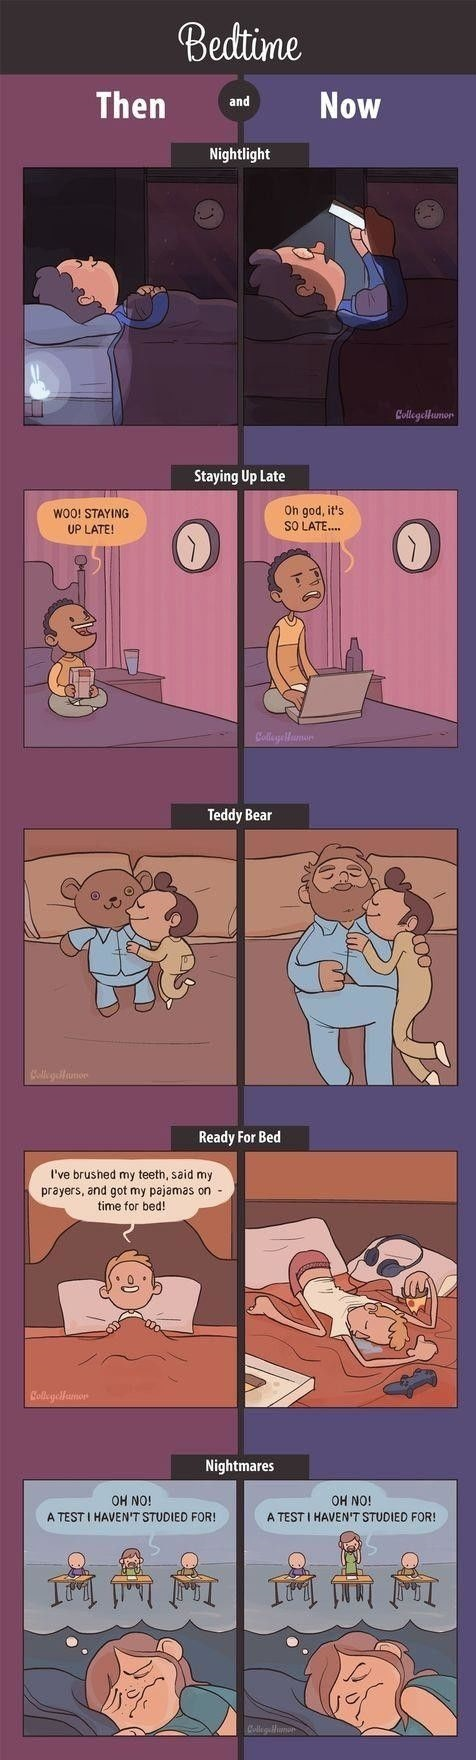 Bedtime: then and now